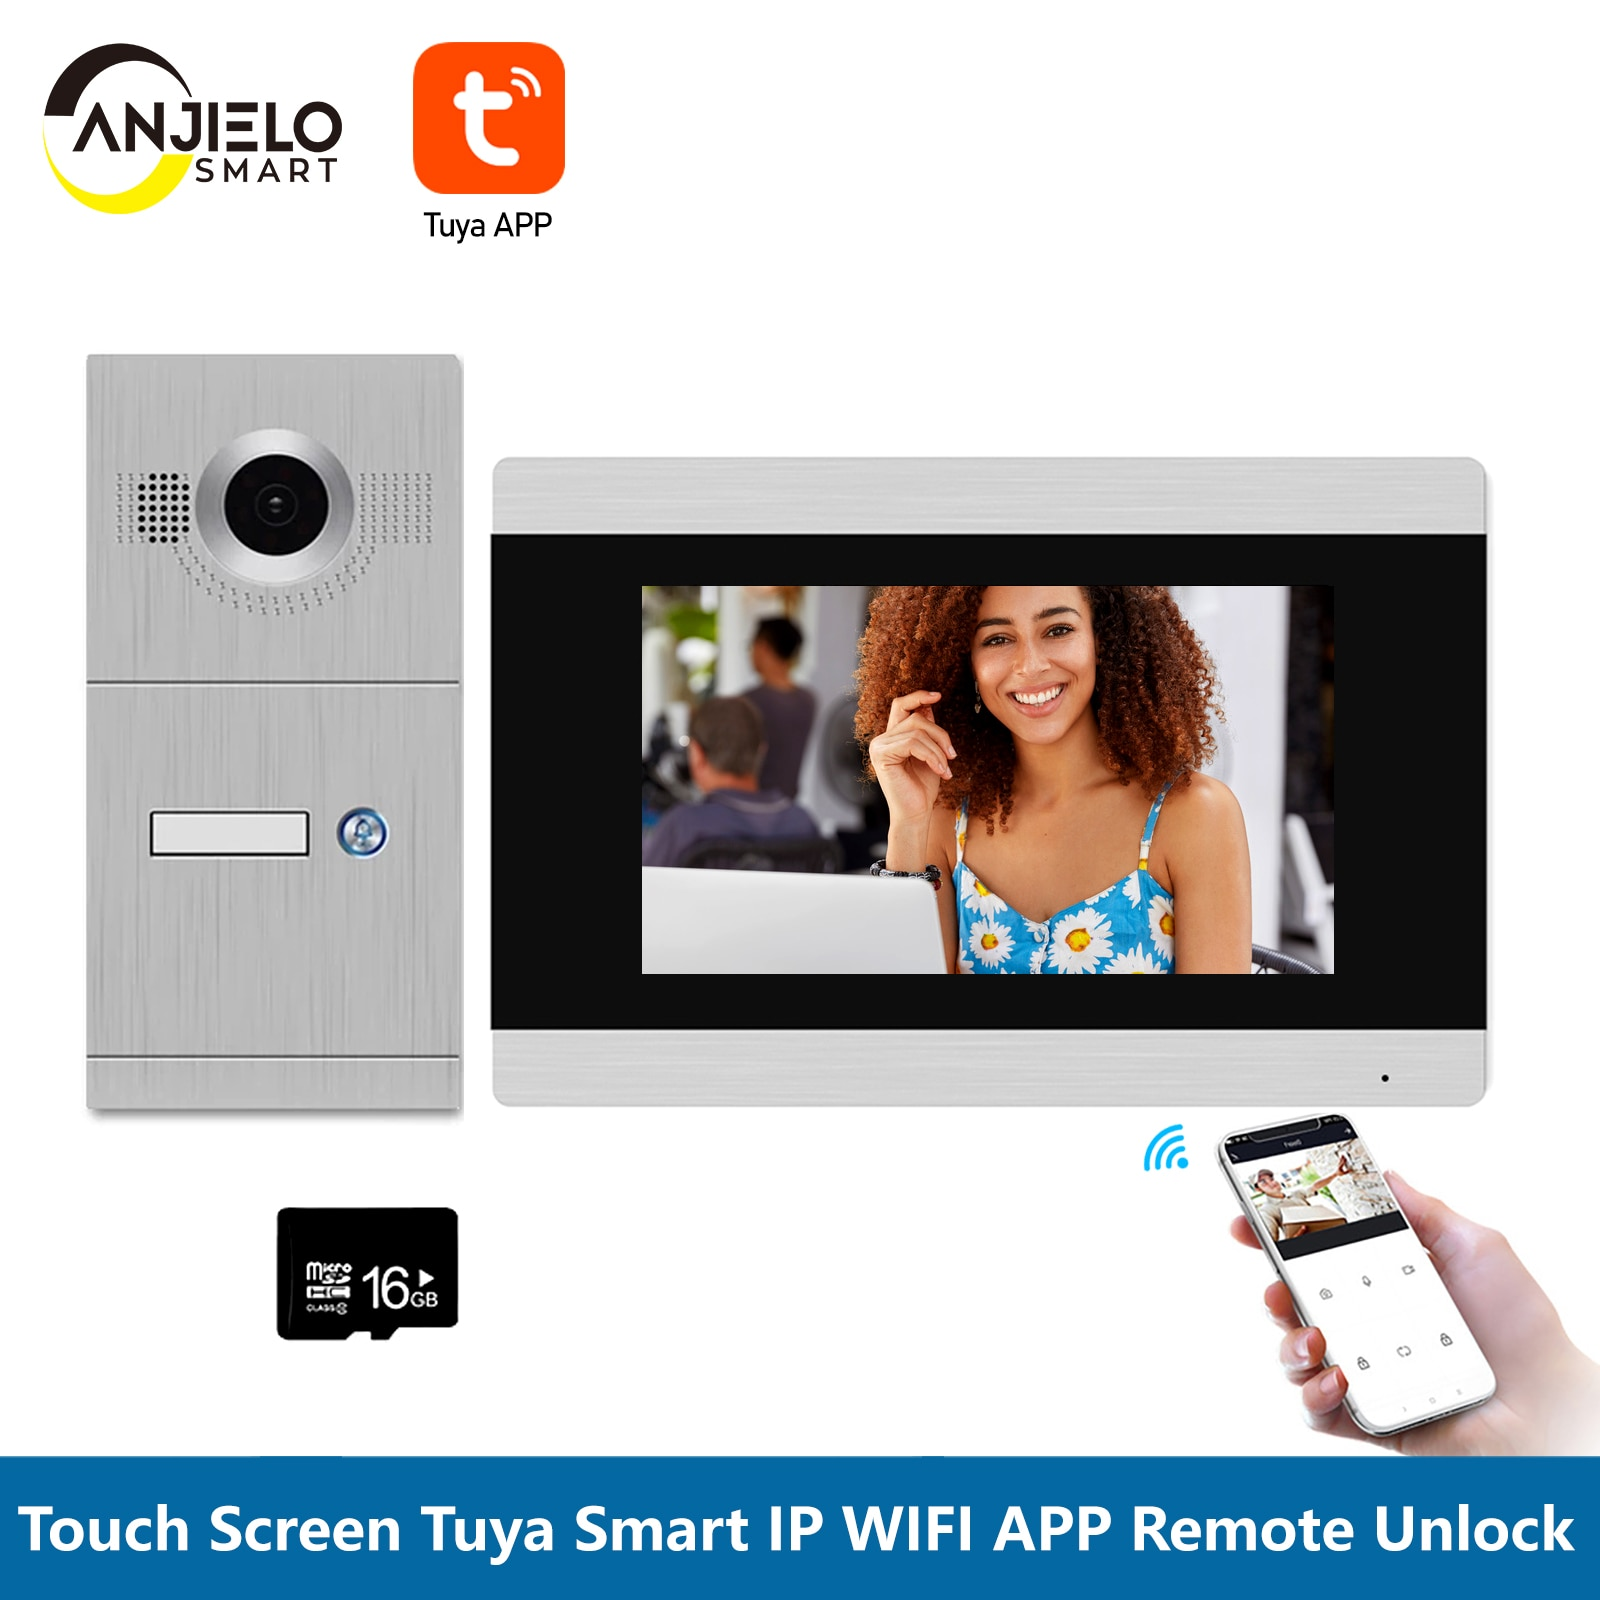 wireless wifi ip box for video doorphone doorbell building intercom system control 3g 4g android iphone ipad app on smart phone 7 inch Tuya Smart Wifi IP Touch Screen WIFI Smart Video Door Phone Intercom System support iOS/Android APP Remote Control Unlock